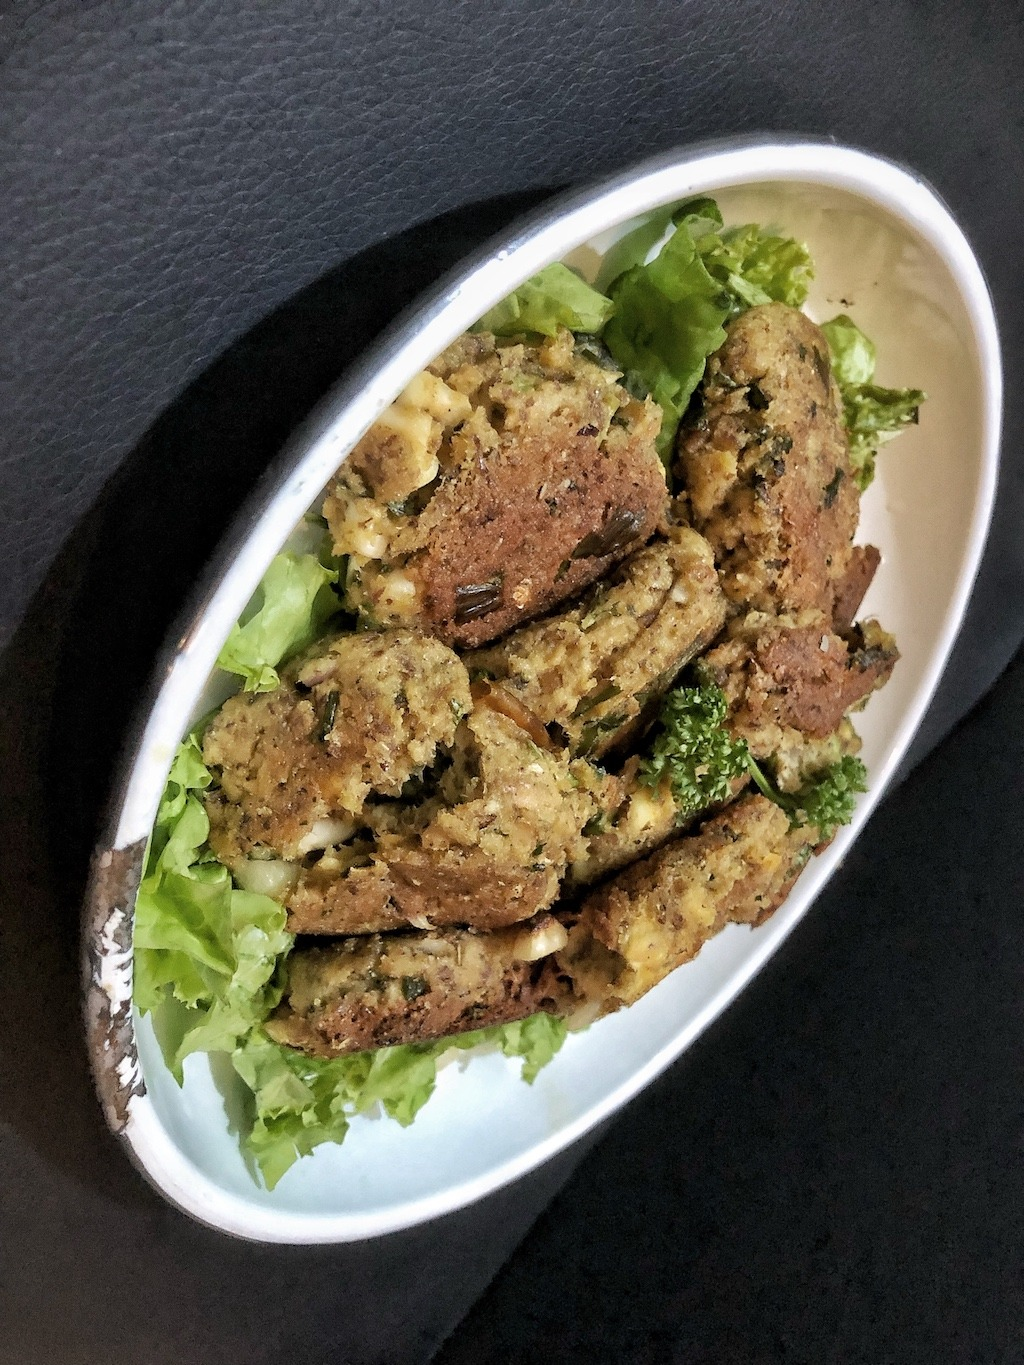 Canned Sardines Fish Cake - Healthy Keto Low Carb